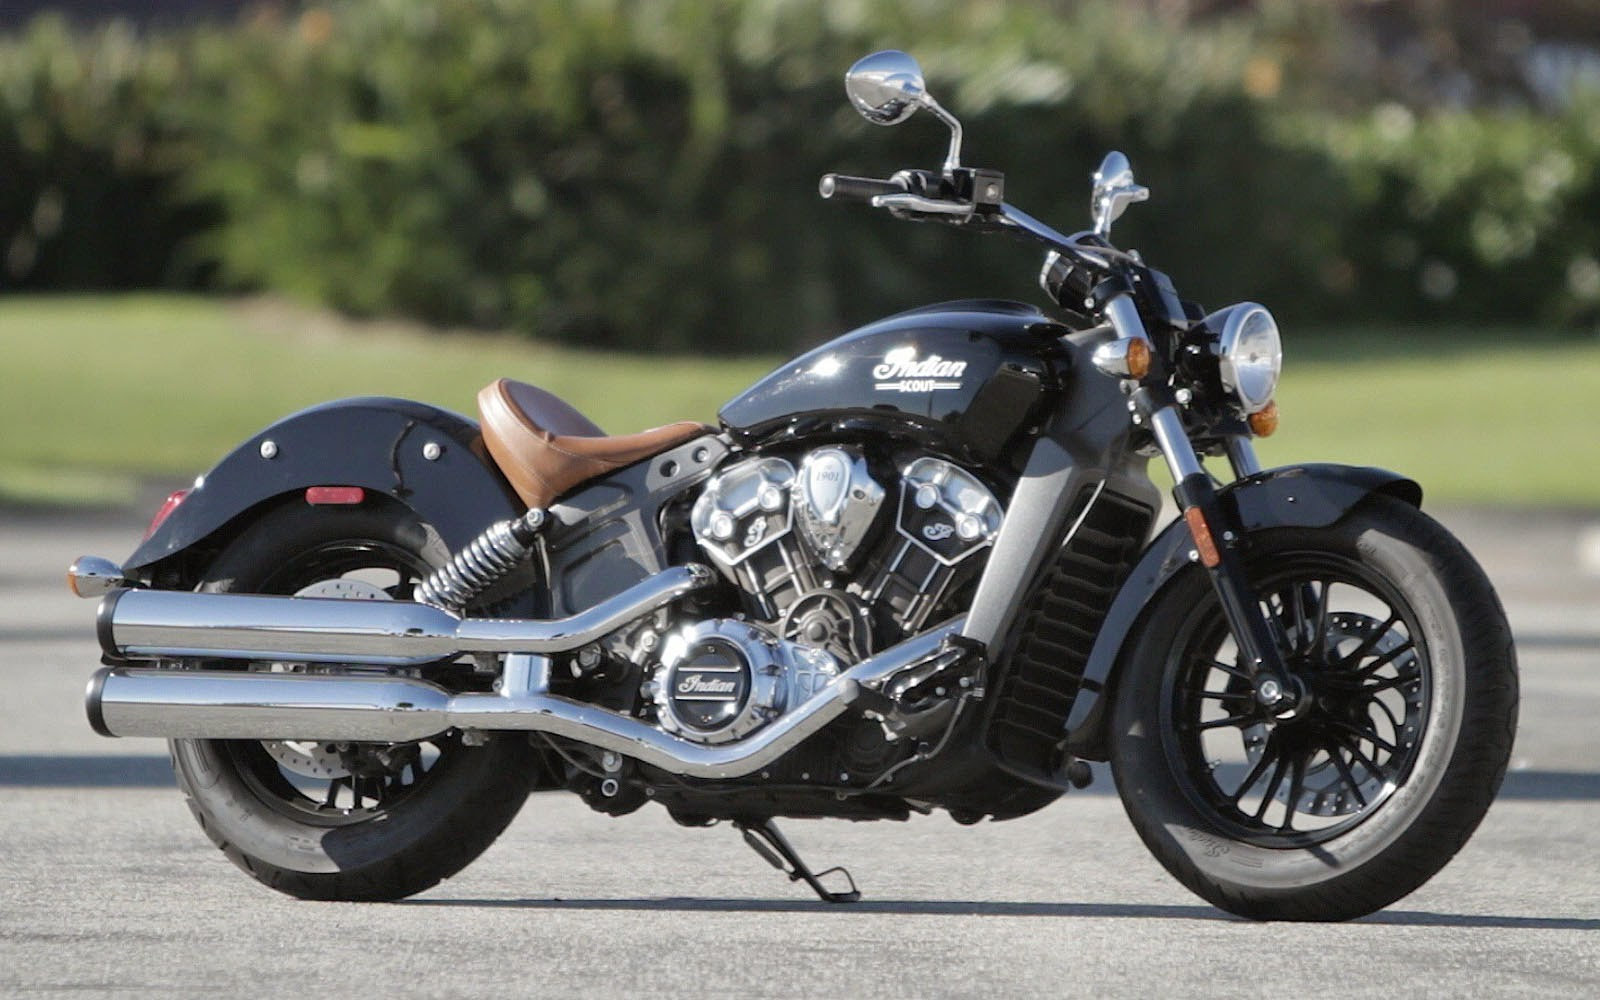 indian scout 2015 wallpapers indian scout 2015 desktop wallpapers ...